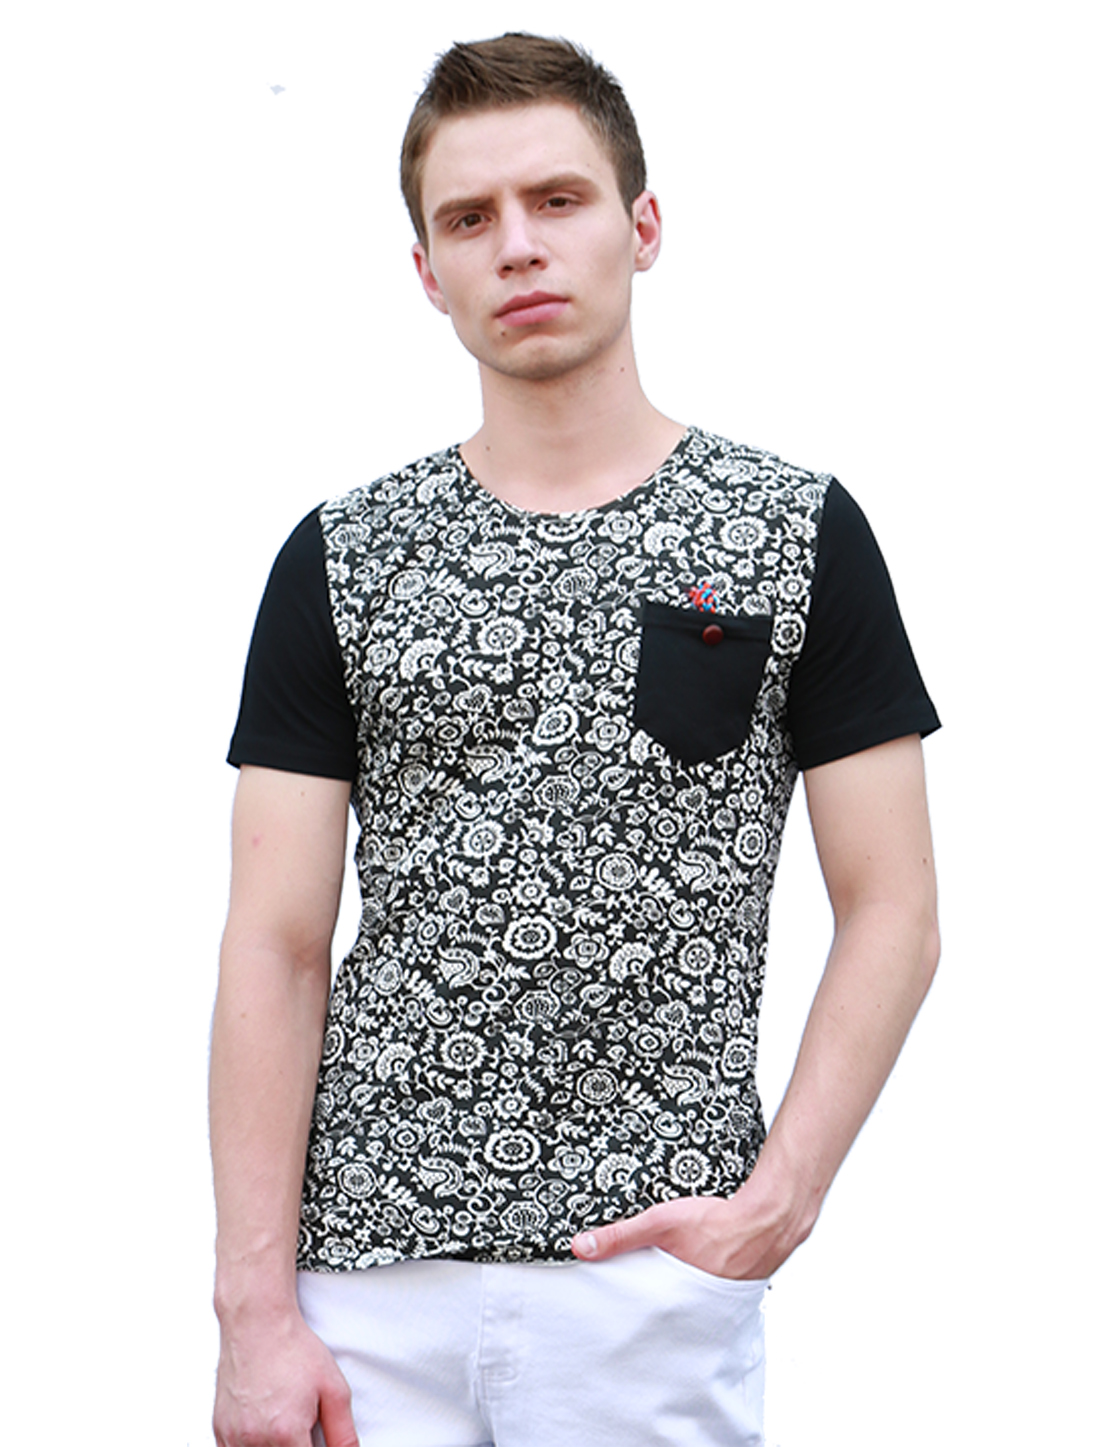 Men Floral Prints Chest Pocket Crew Neck Tee Shirt Black S